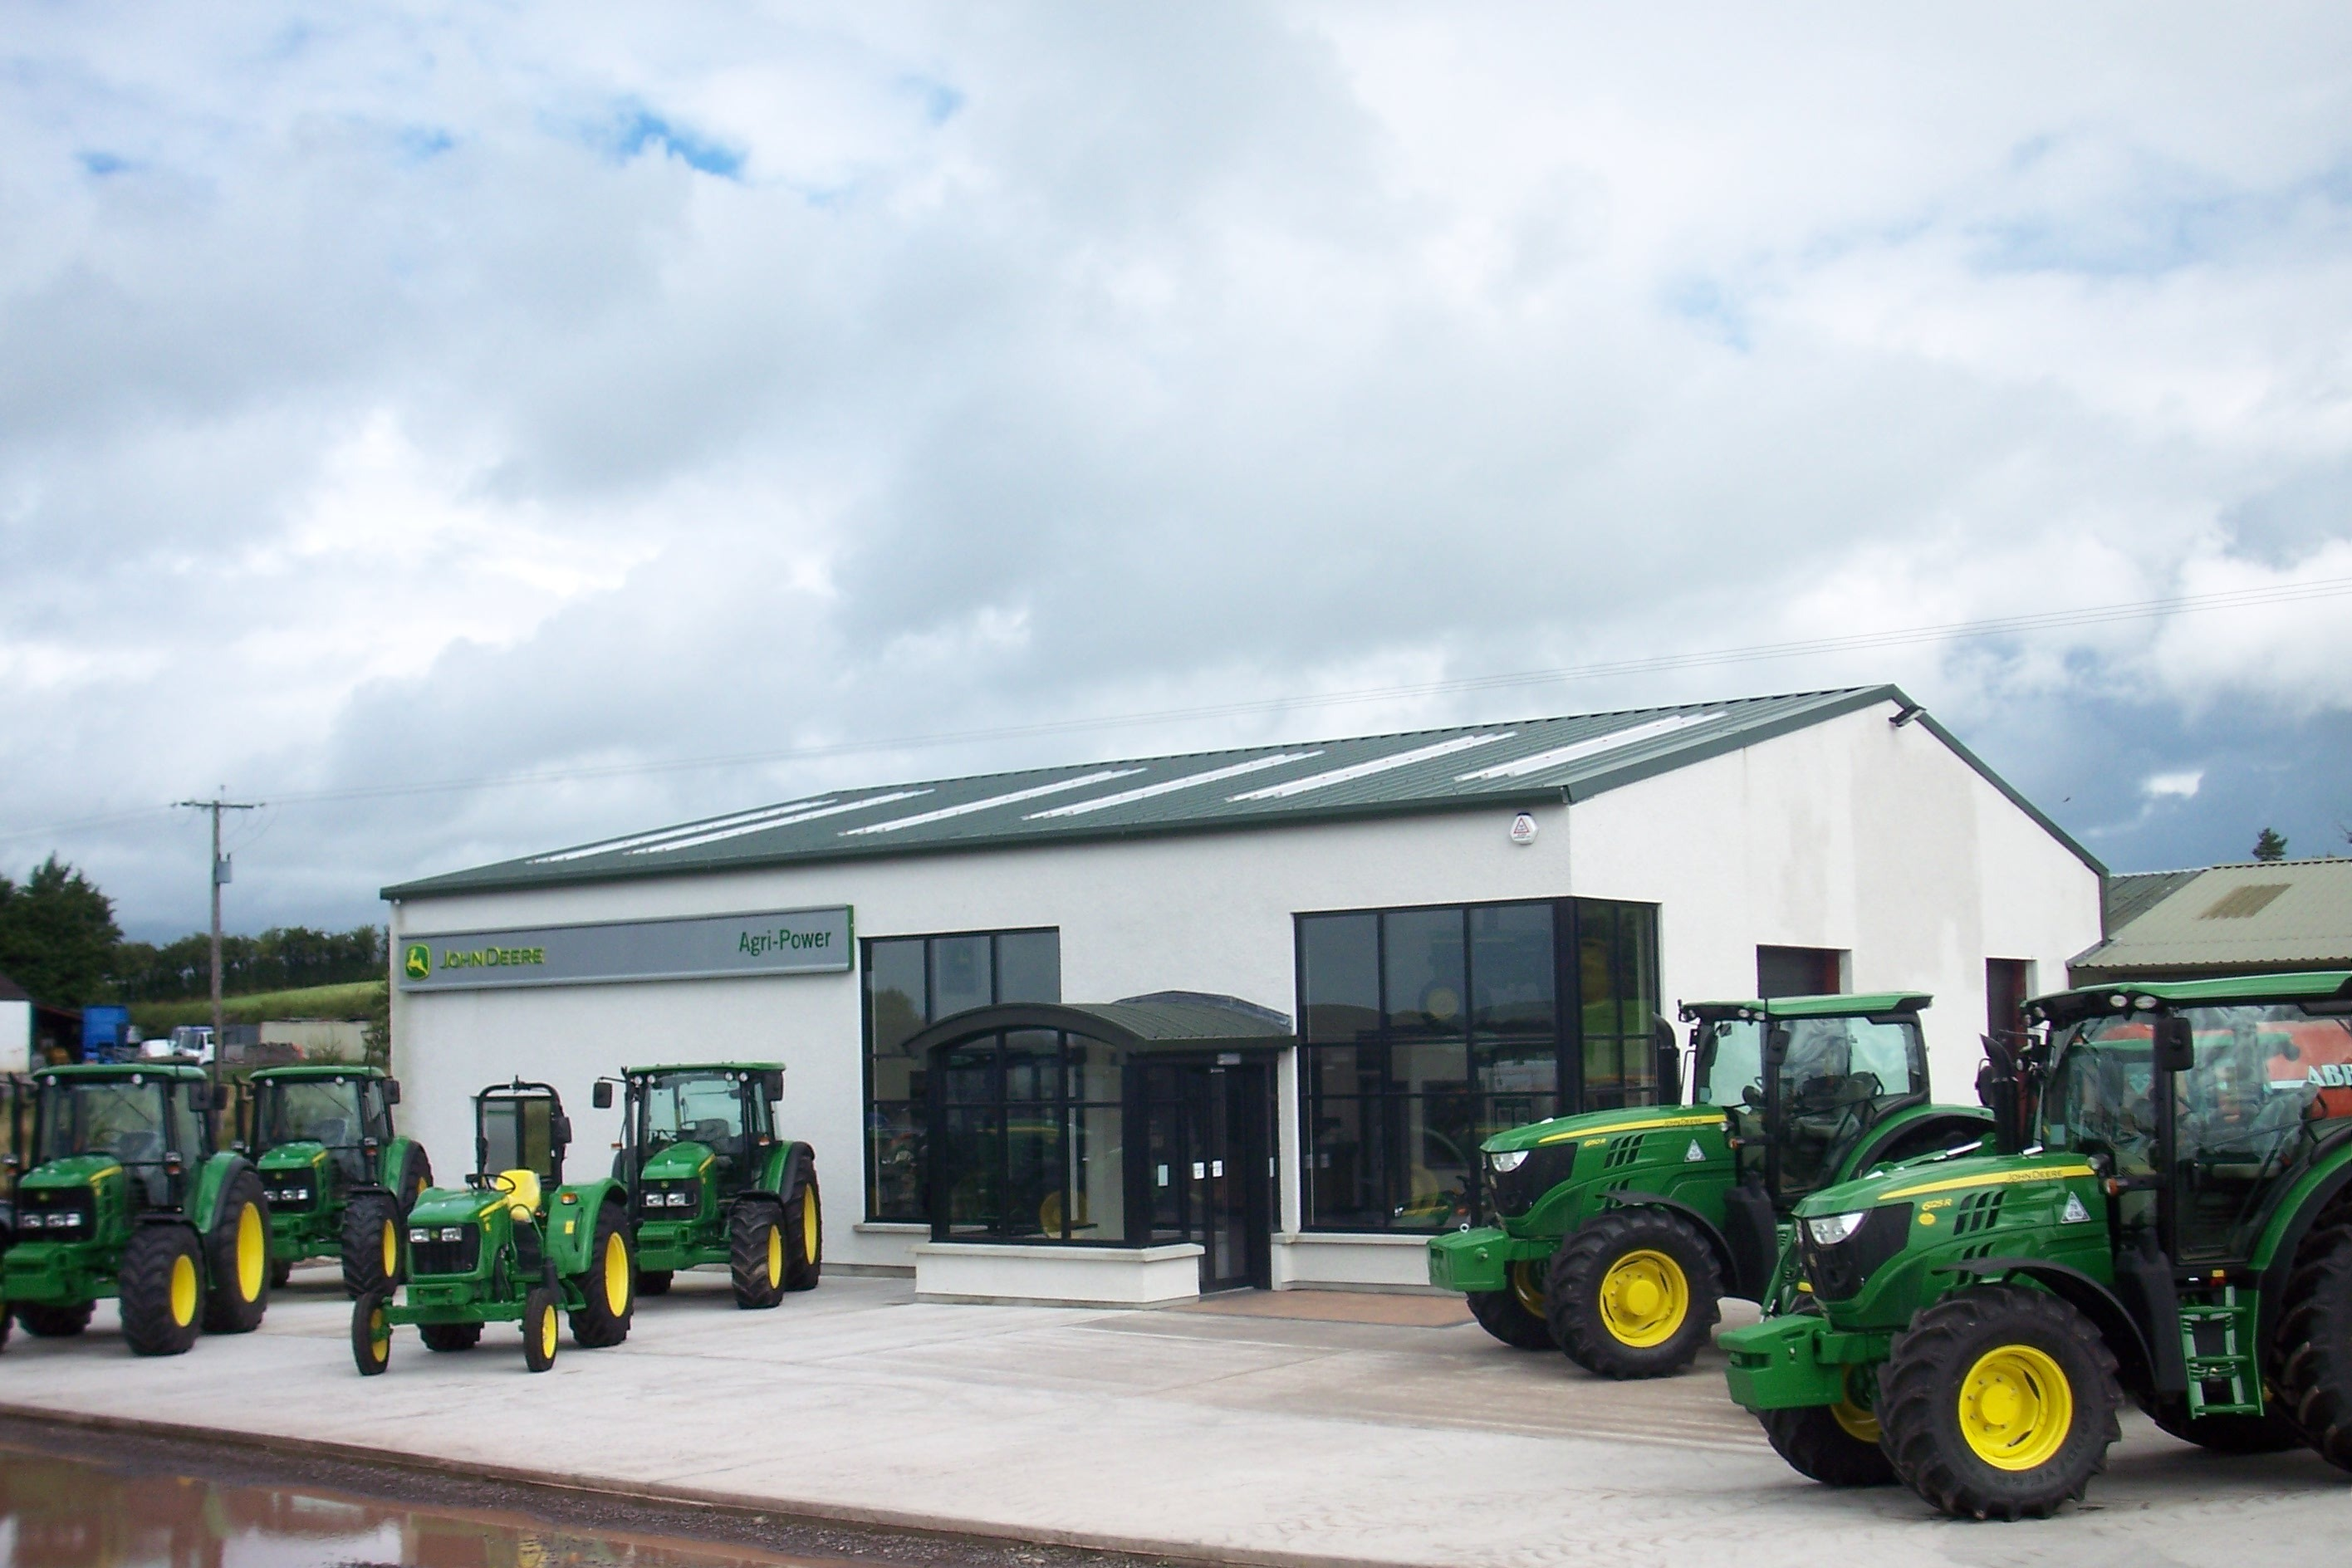 New showroom open at Agri-Power!